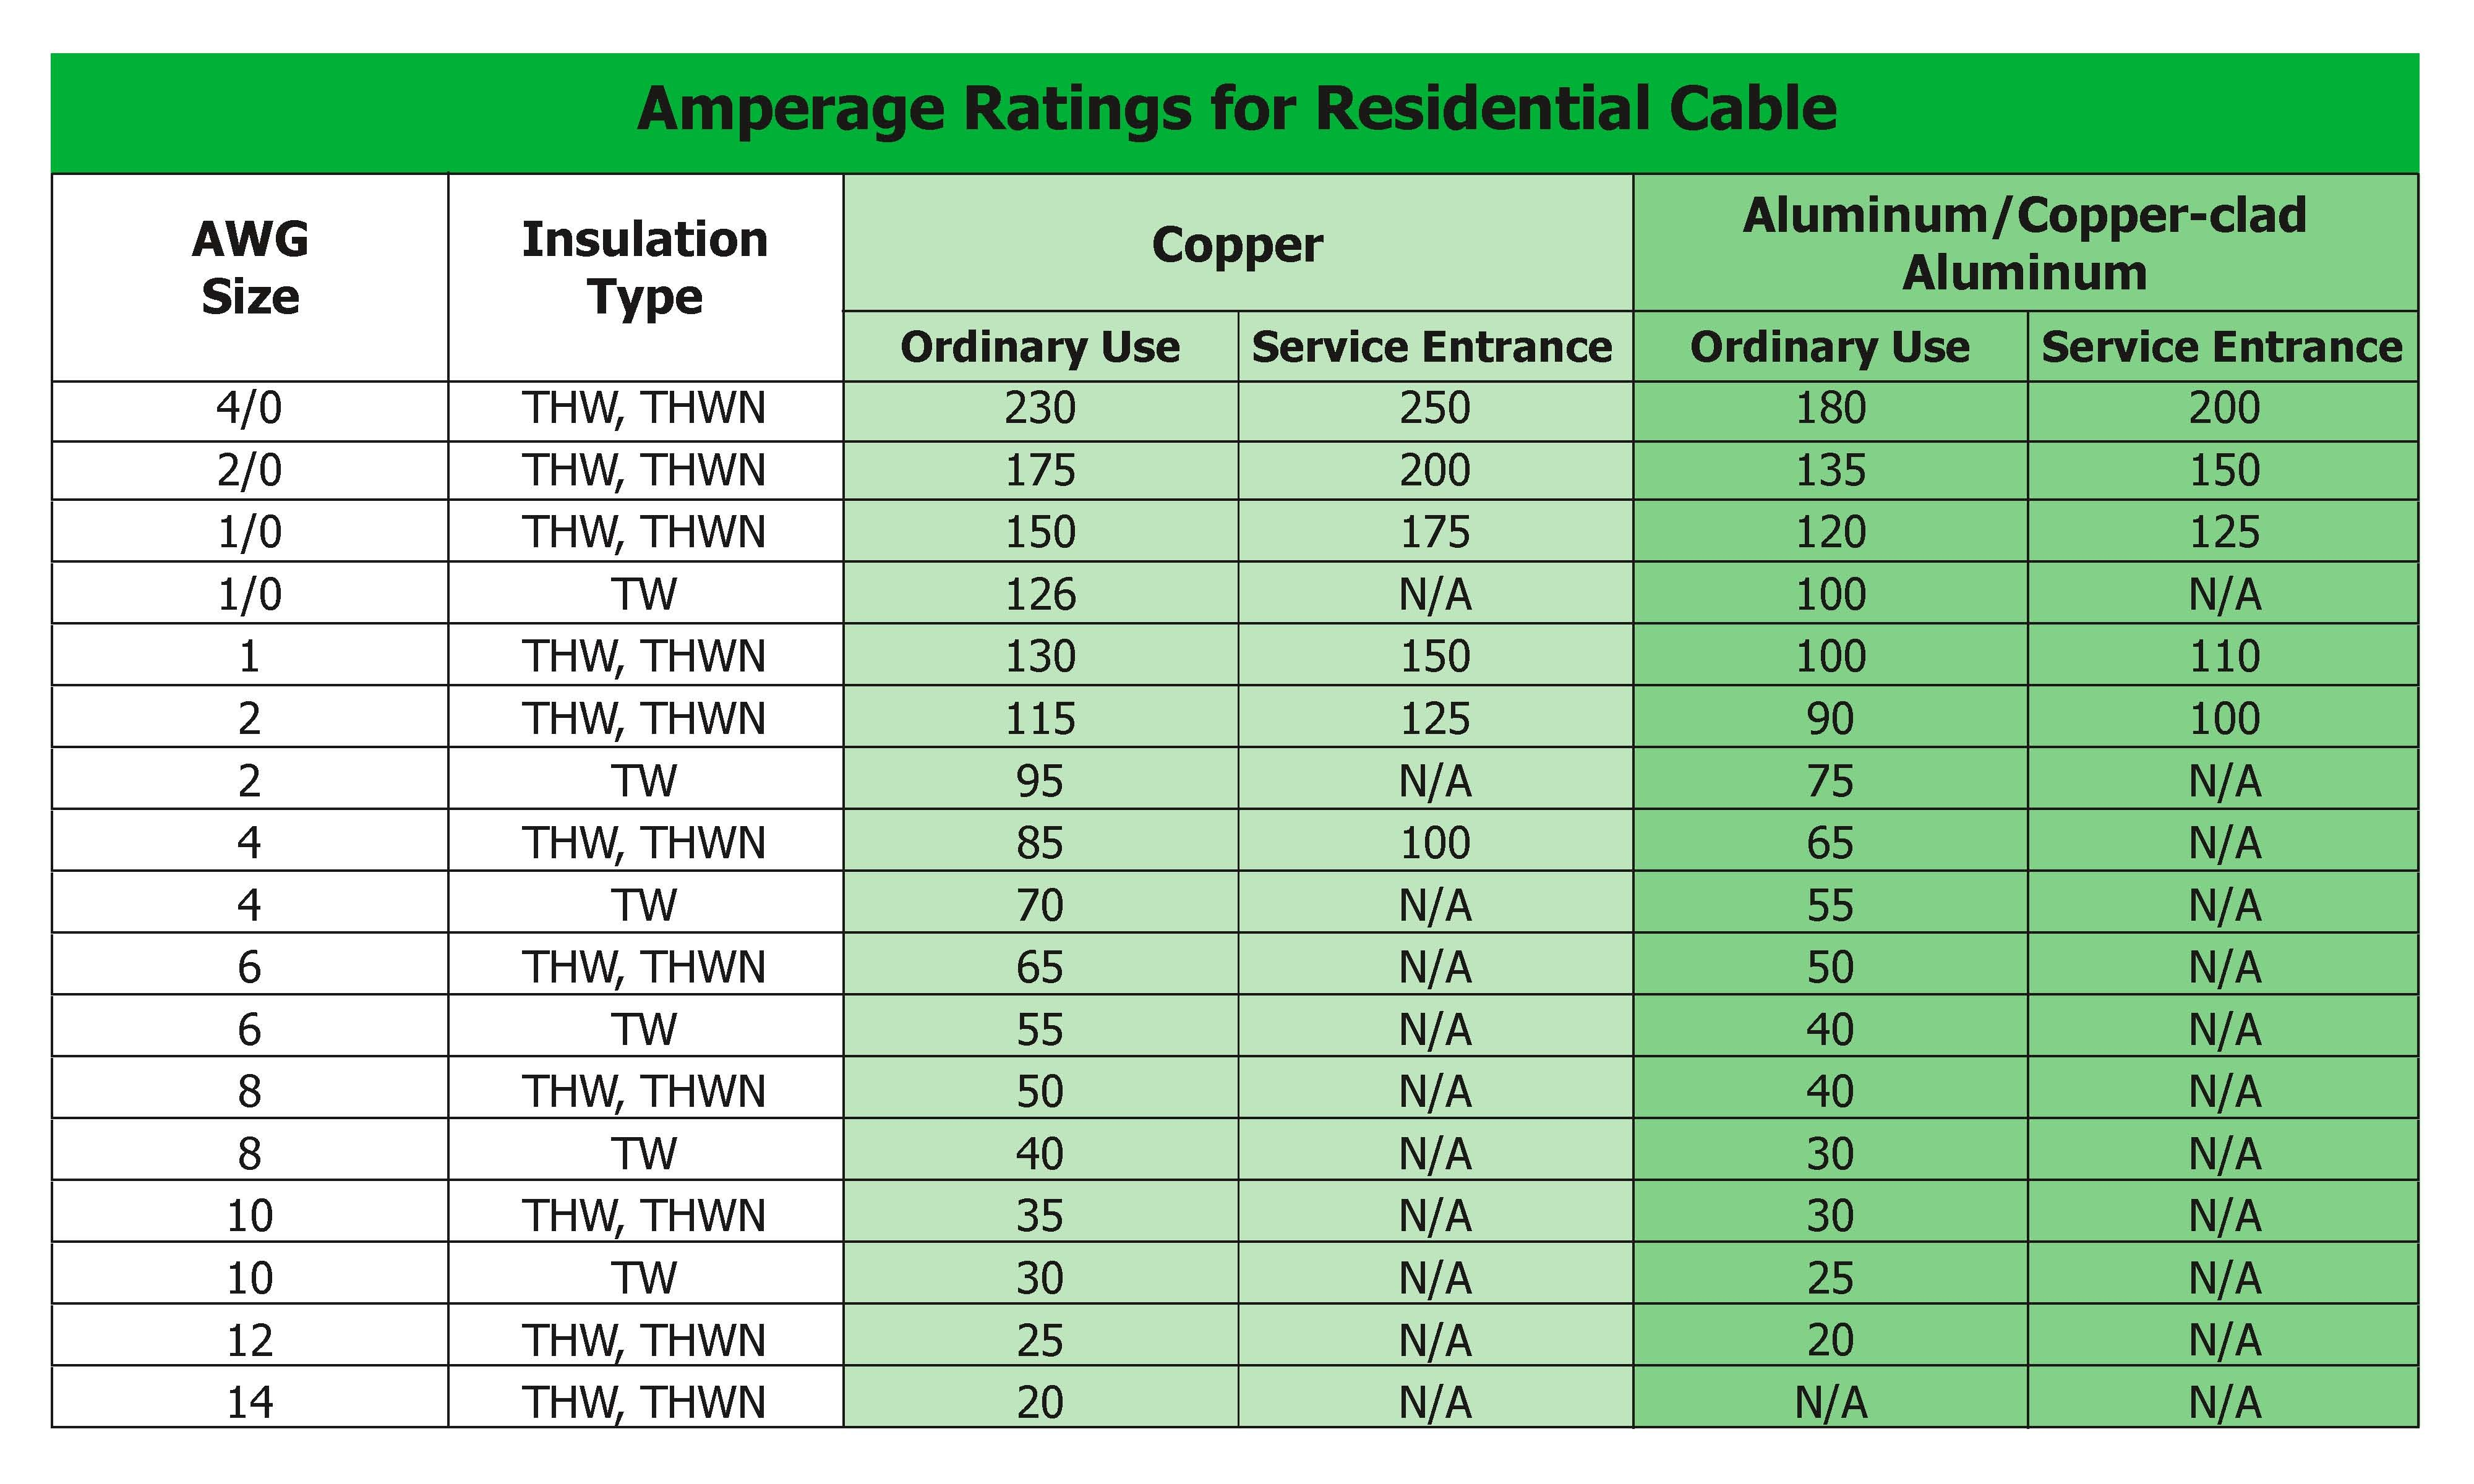 Wire amp rating in conduit wire center dorable electrical cable rating chart gallery electrical diagram rh itseo info 10 gauge wire amp rating 14 gauge wire amp rating publicscrutiny Image collections